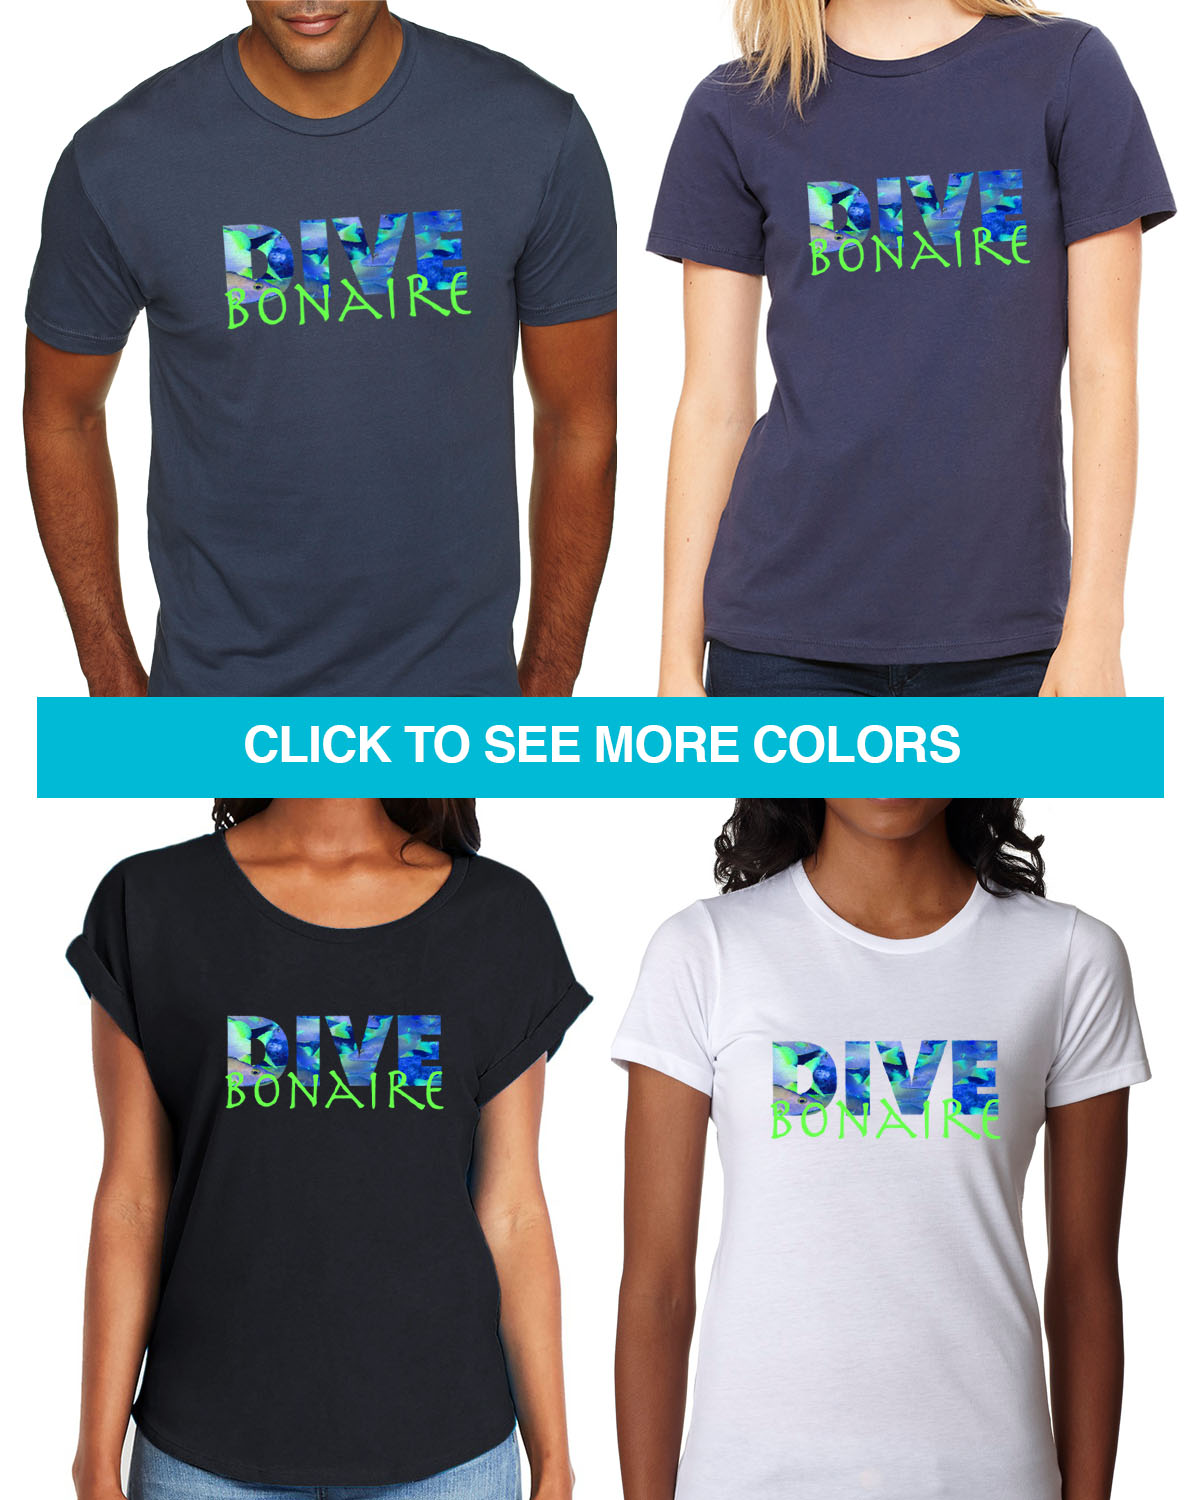 Short sleeve Dive Bonaire t-shirt for men and women